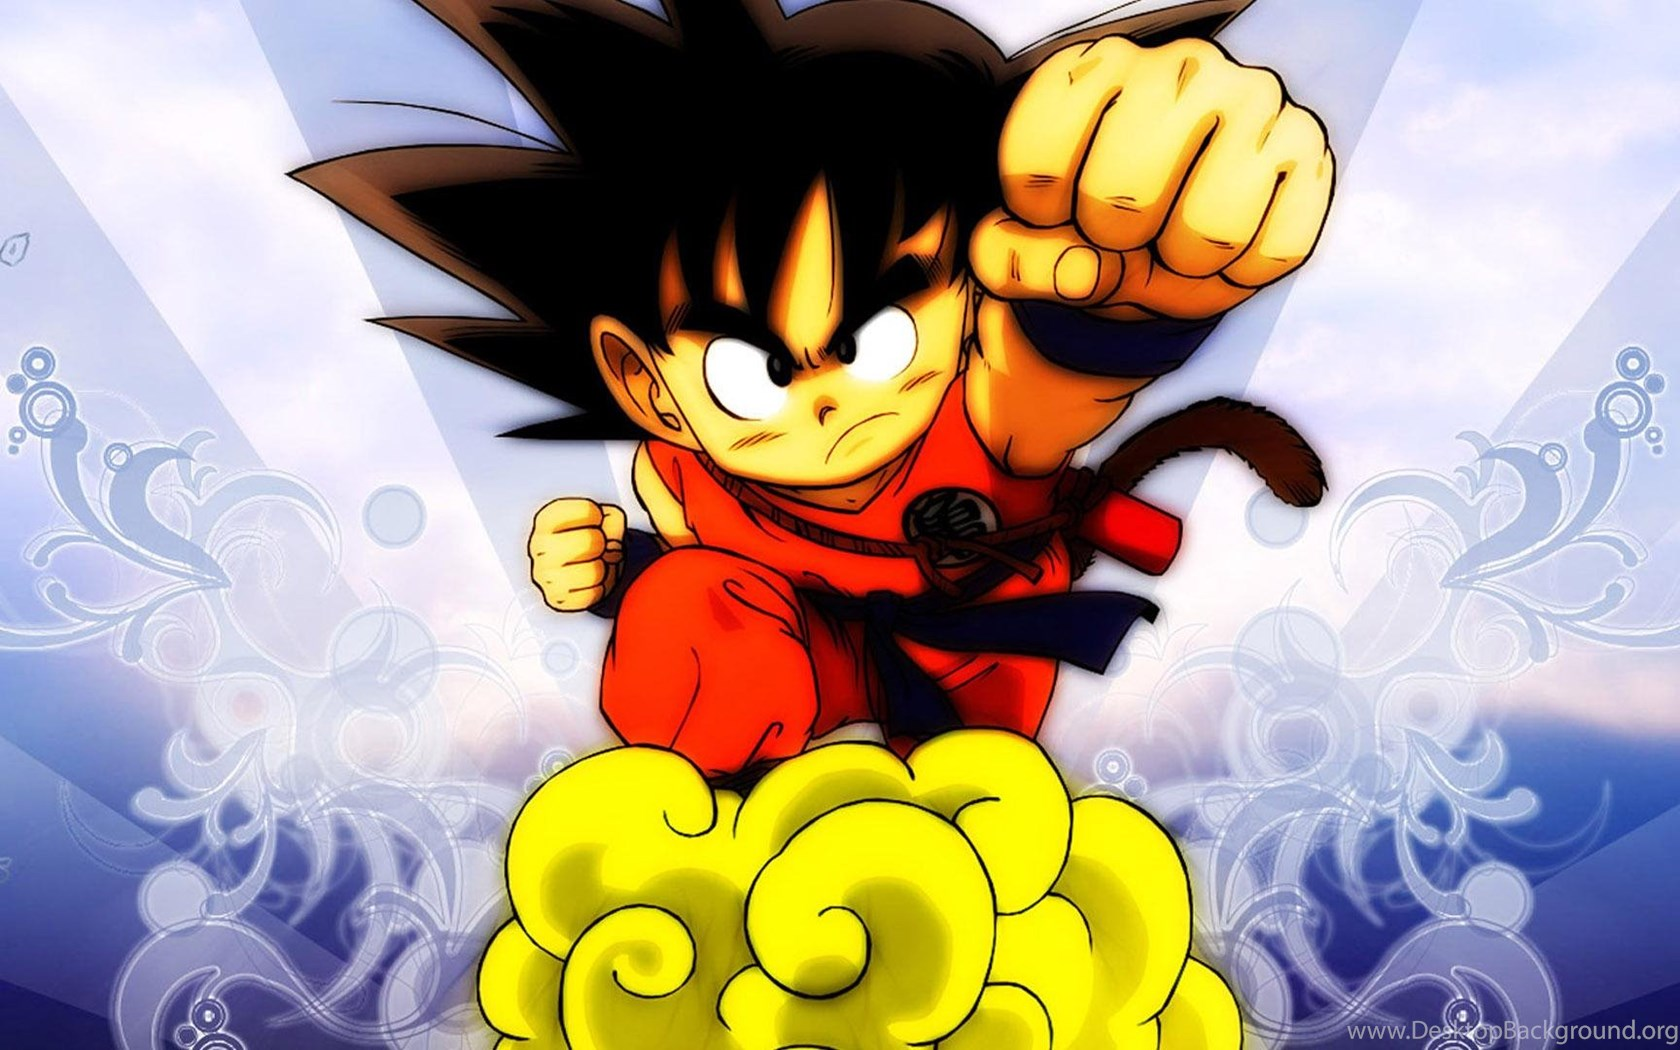 Dragon Ball Gt Wallpapers Full Hd Wallpapers Search Kid Goku 1680x1050 Download Hd Wallpaper Wallpapertip